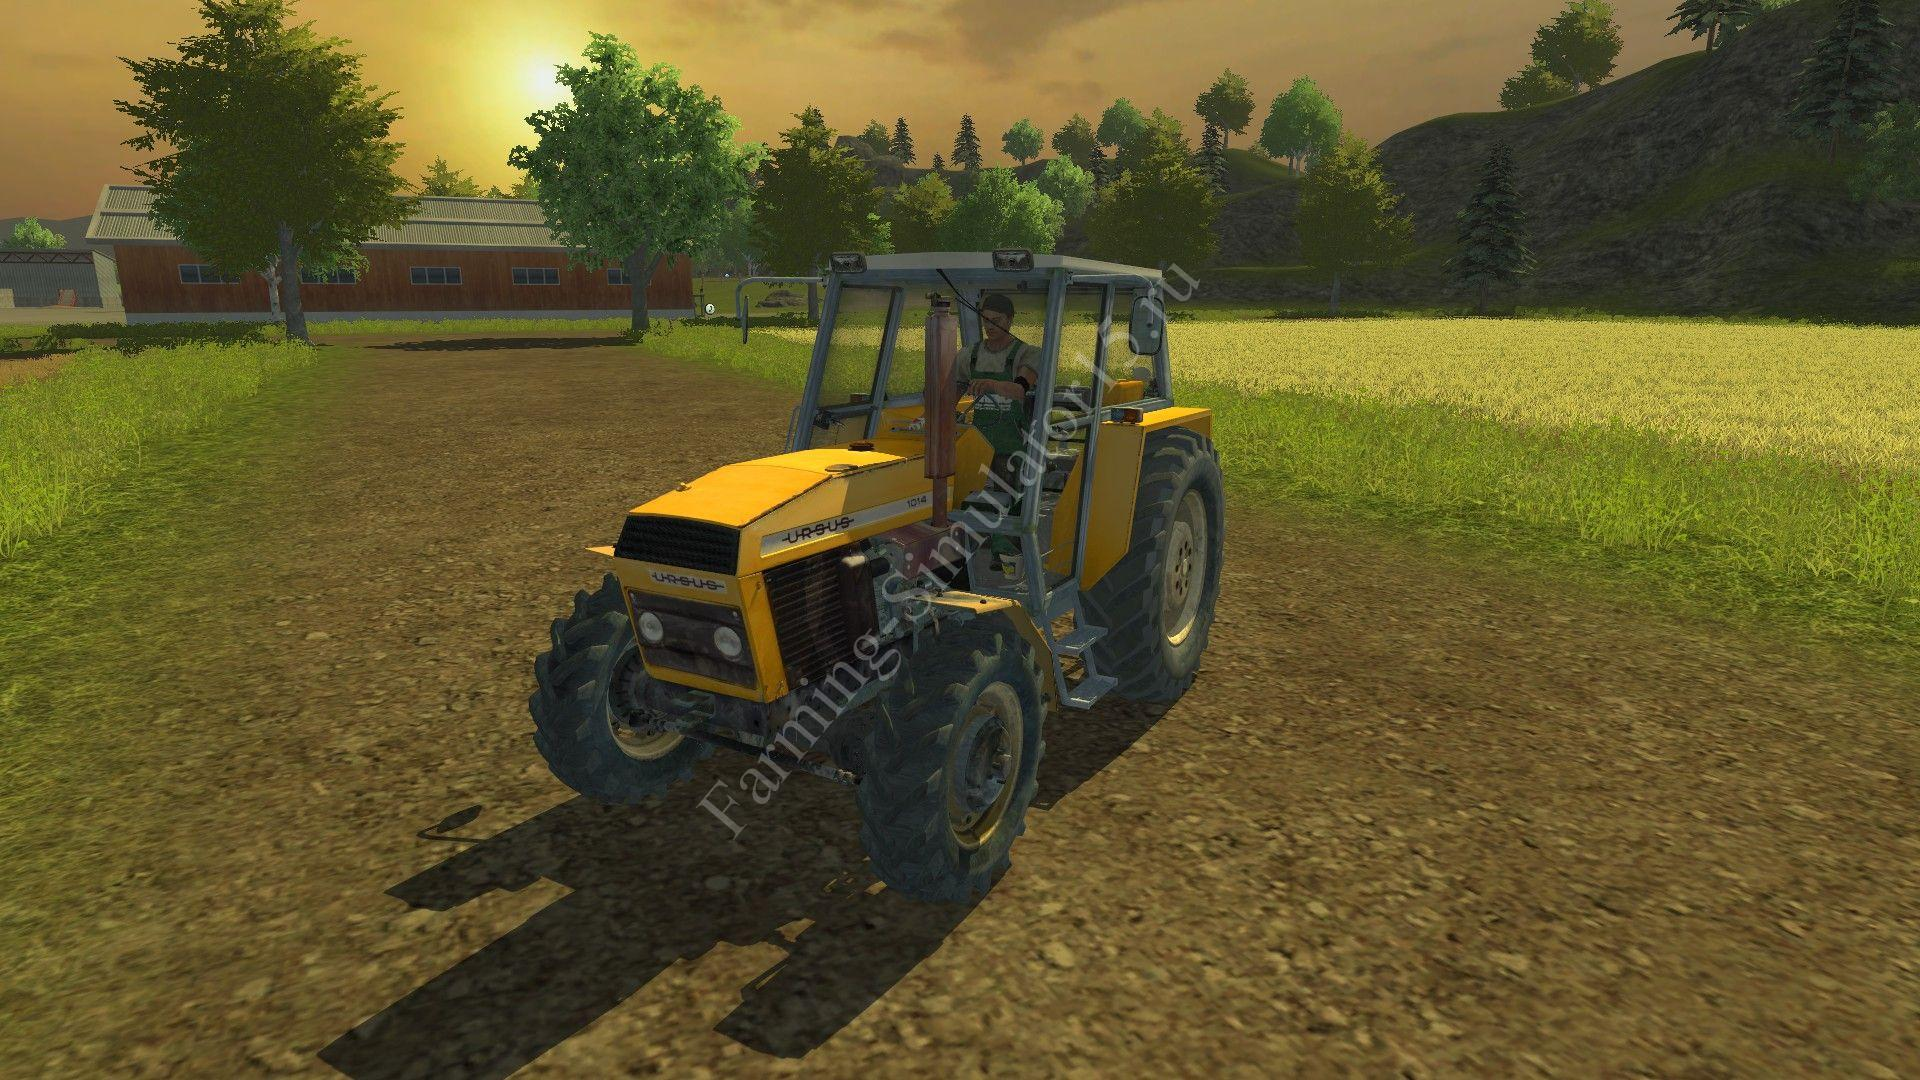 Мод трактора Ursus 1014 v 1.0 Farming Simulator 2013, Farming Simulator 13